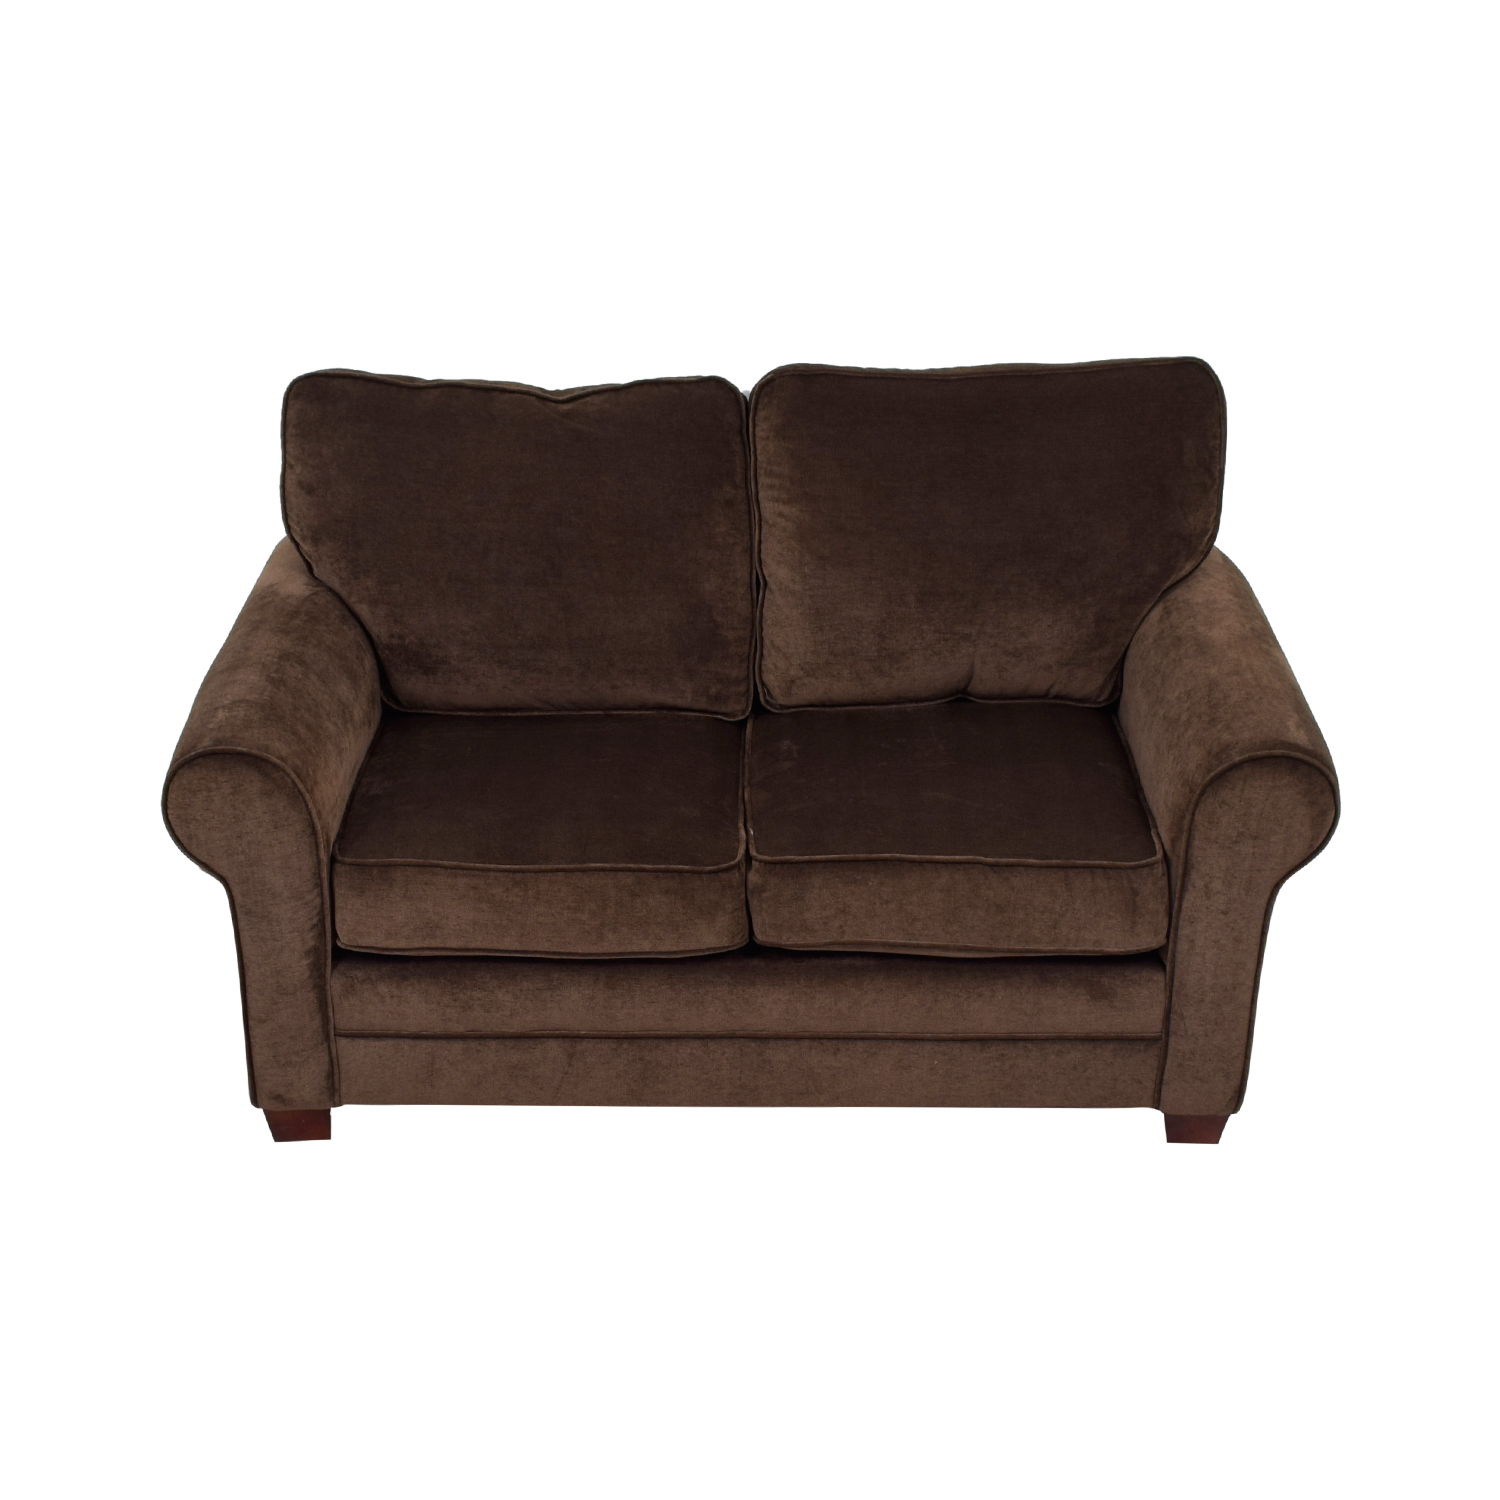 buy Bob's Furniture Bob's Furniture Brown Loveseat online